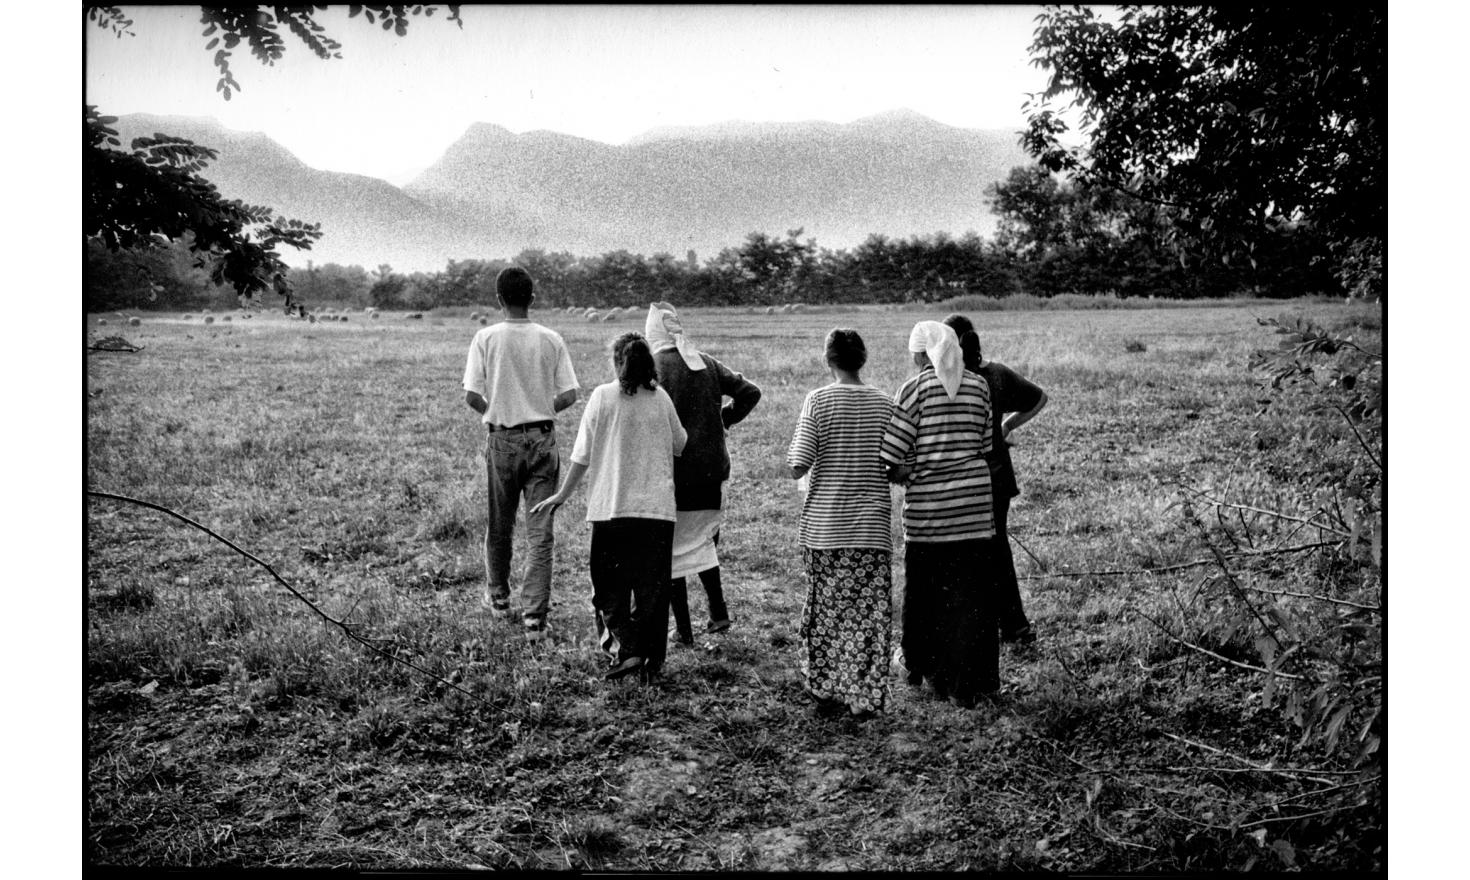 Villagers after they paid  homage on the scene of a massacre by Serbian forces.Quishk, Kosovo. 07-1999